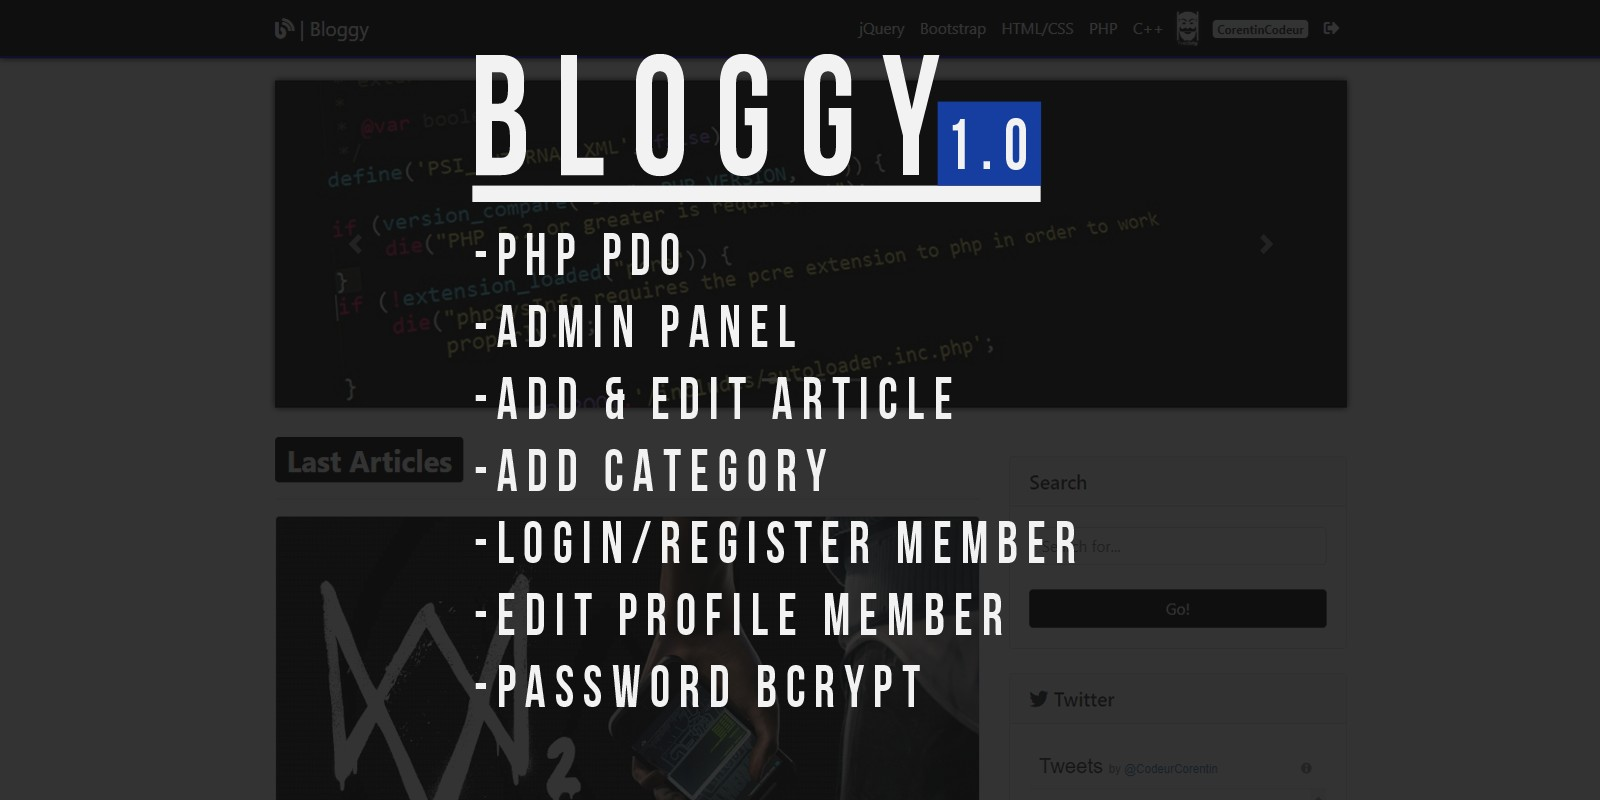 Bloggy - CMS Mini Blog Script PHP